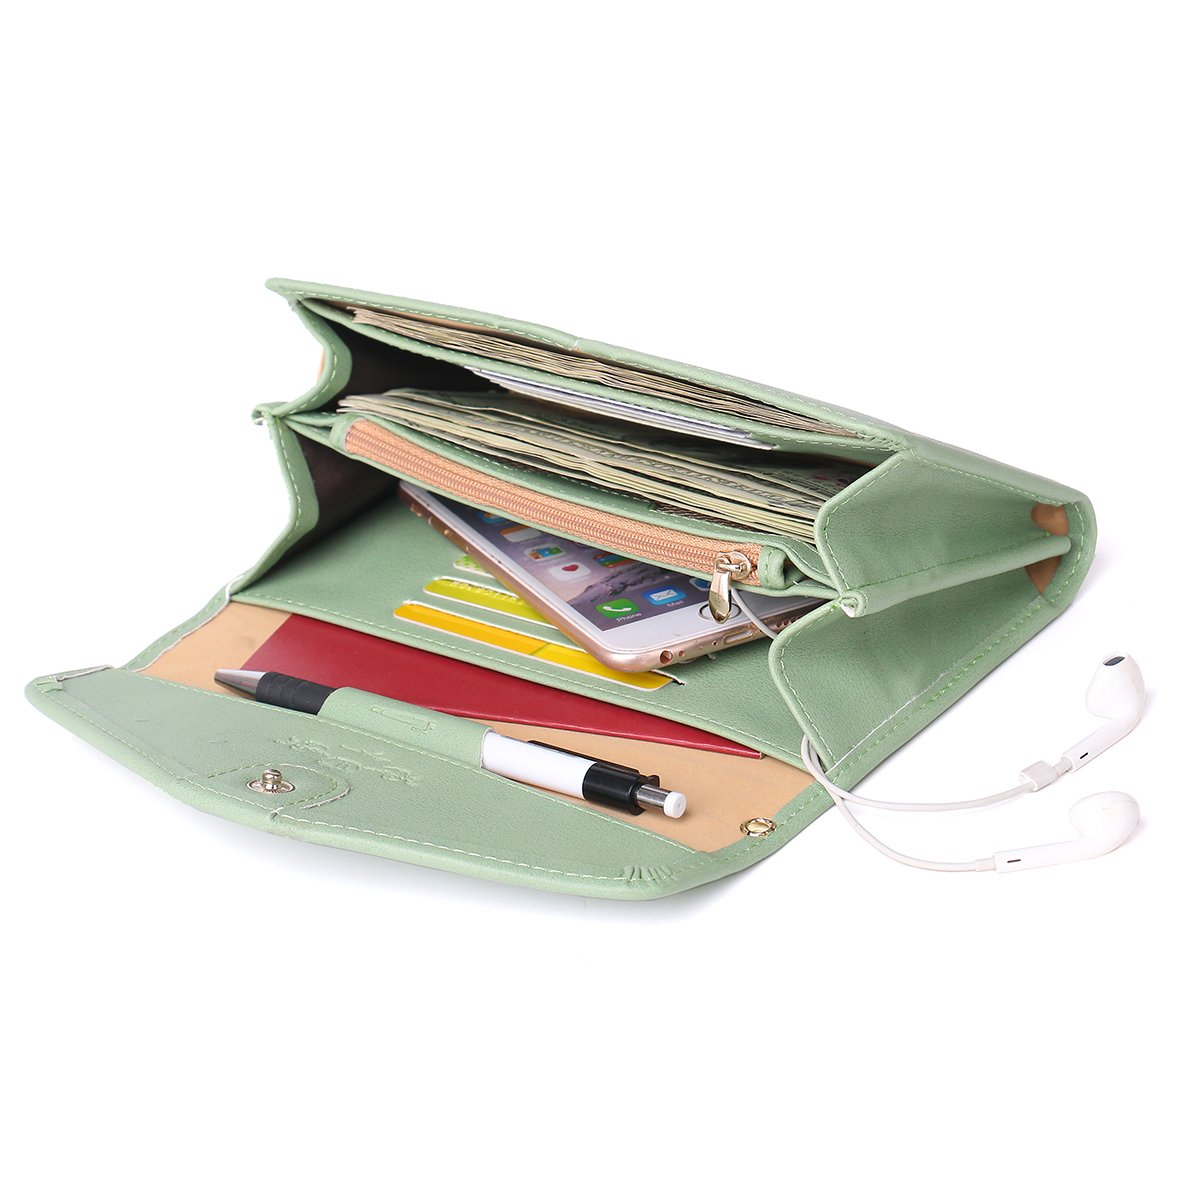 Zg Wristlets for Women, Cell Phone Clutch Wallet, Passport Wallet, All In One Purse Extra Capacity by Zg gift (Image #4)